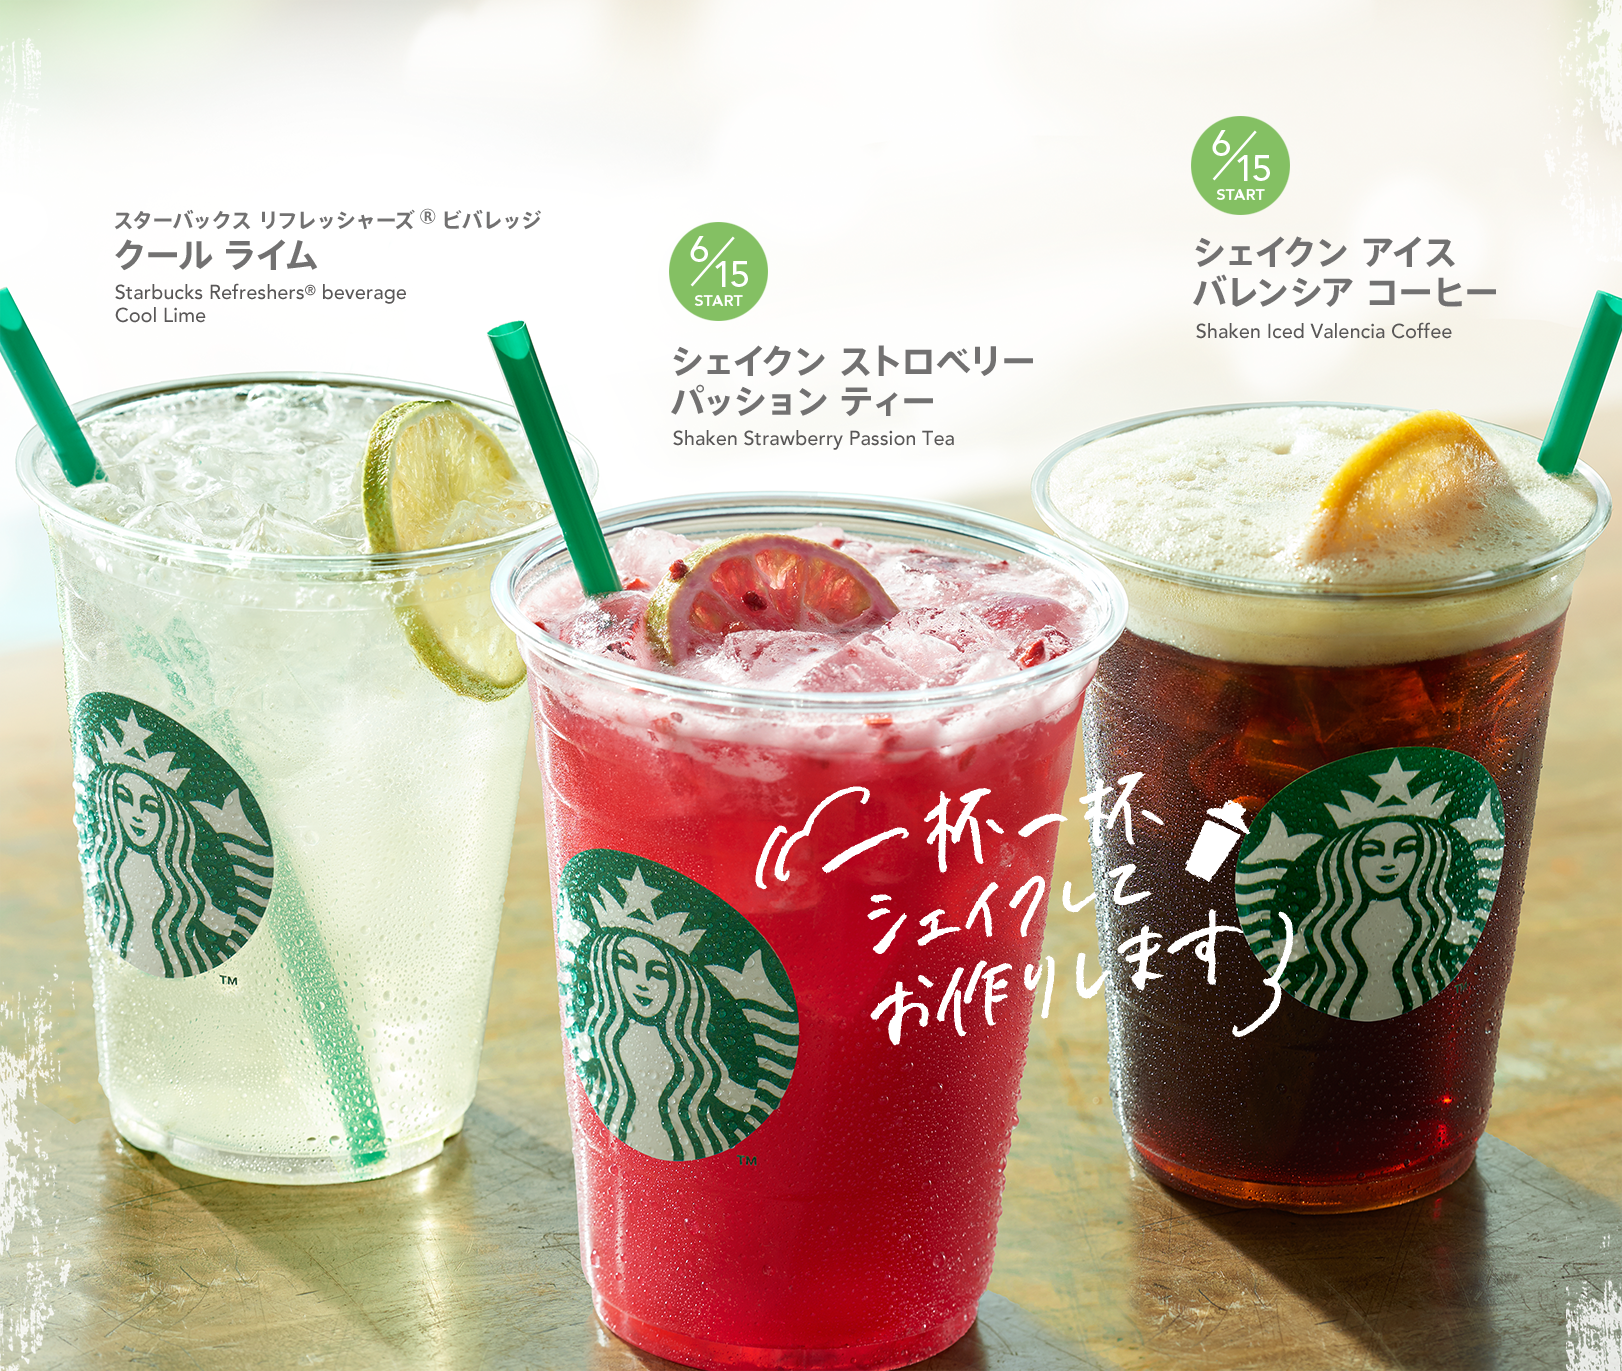 http://www.starbucks.co.jp/cafe/images/summer162/img-3beverage_01.png